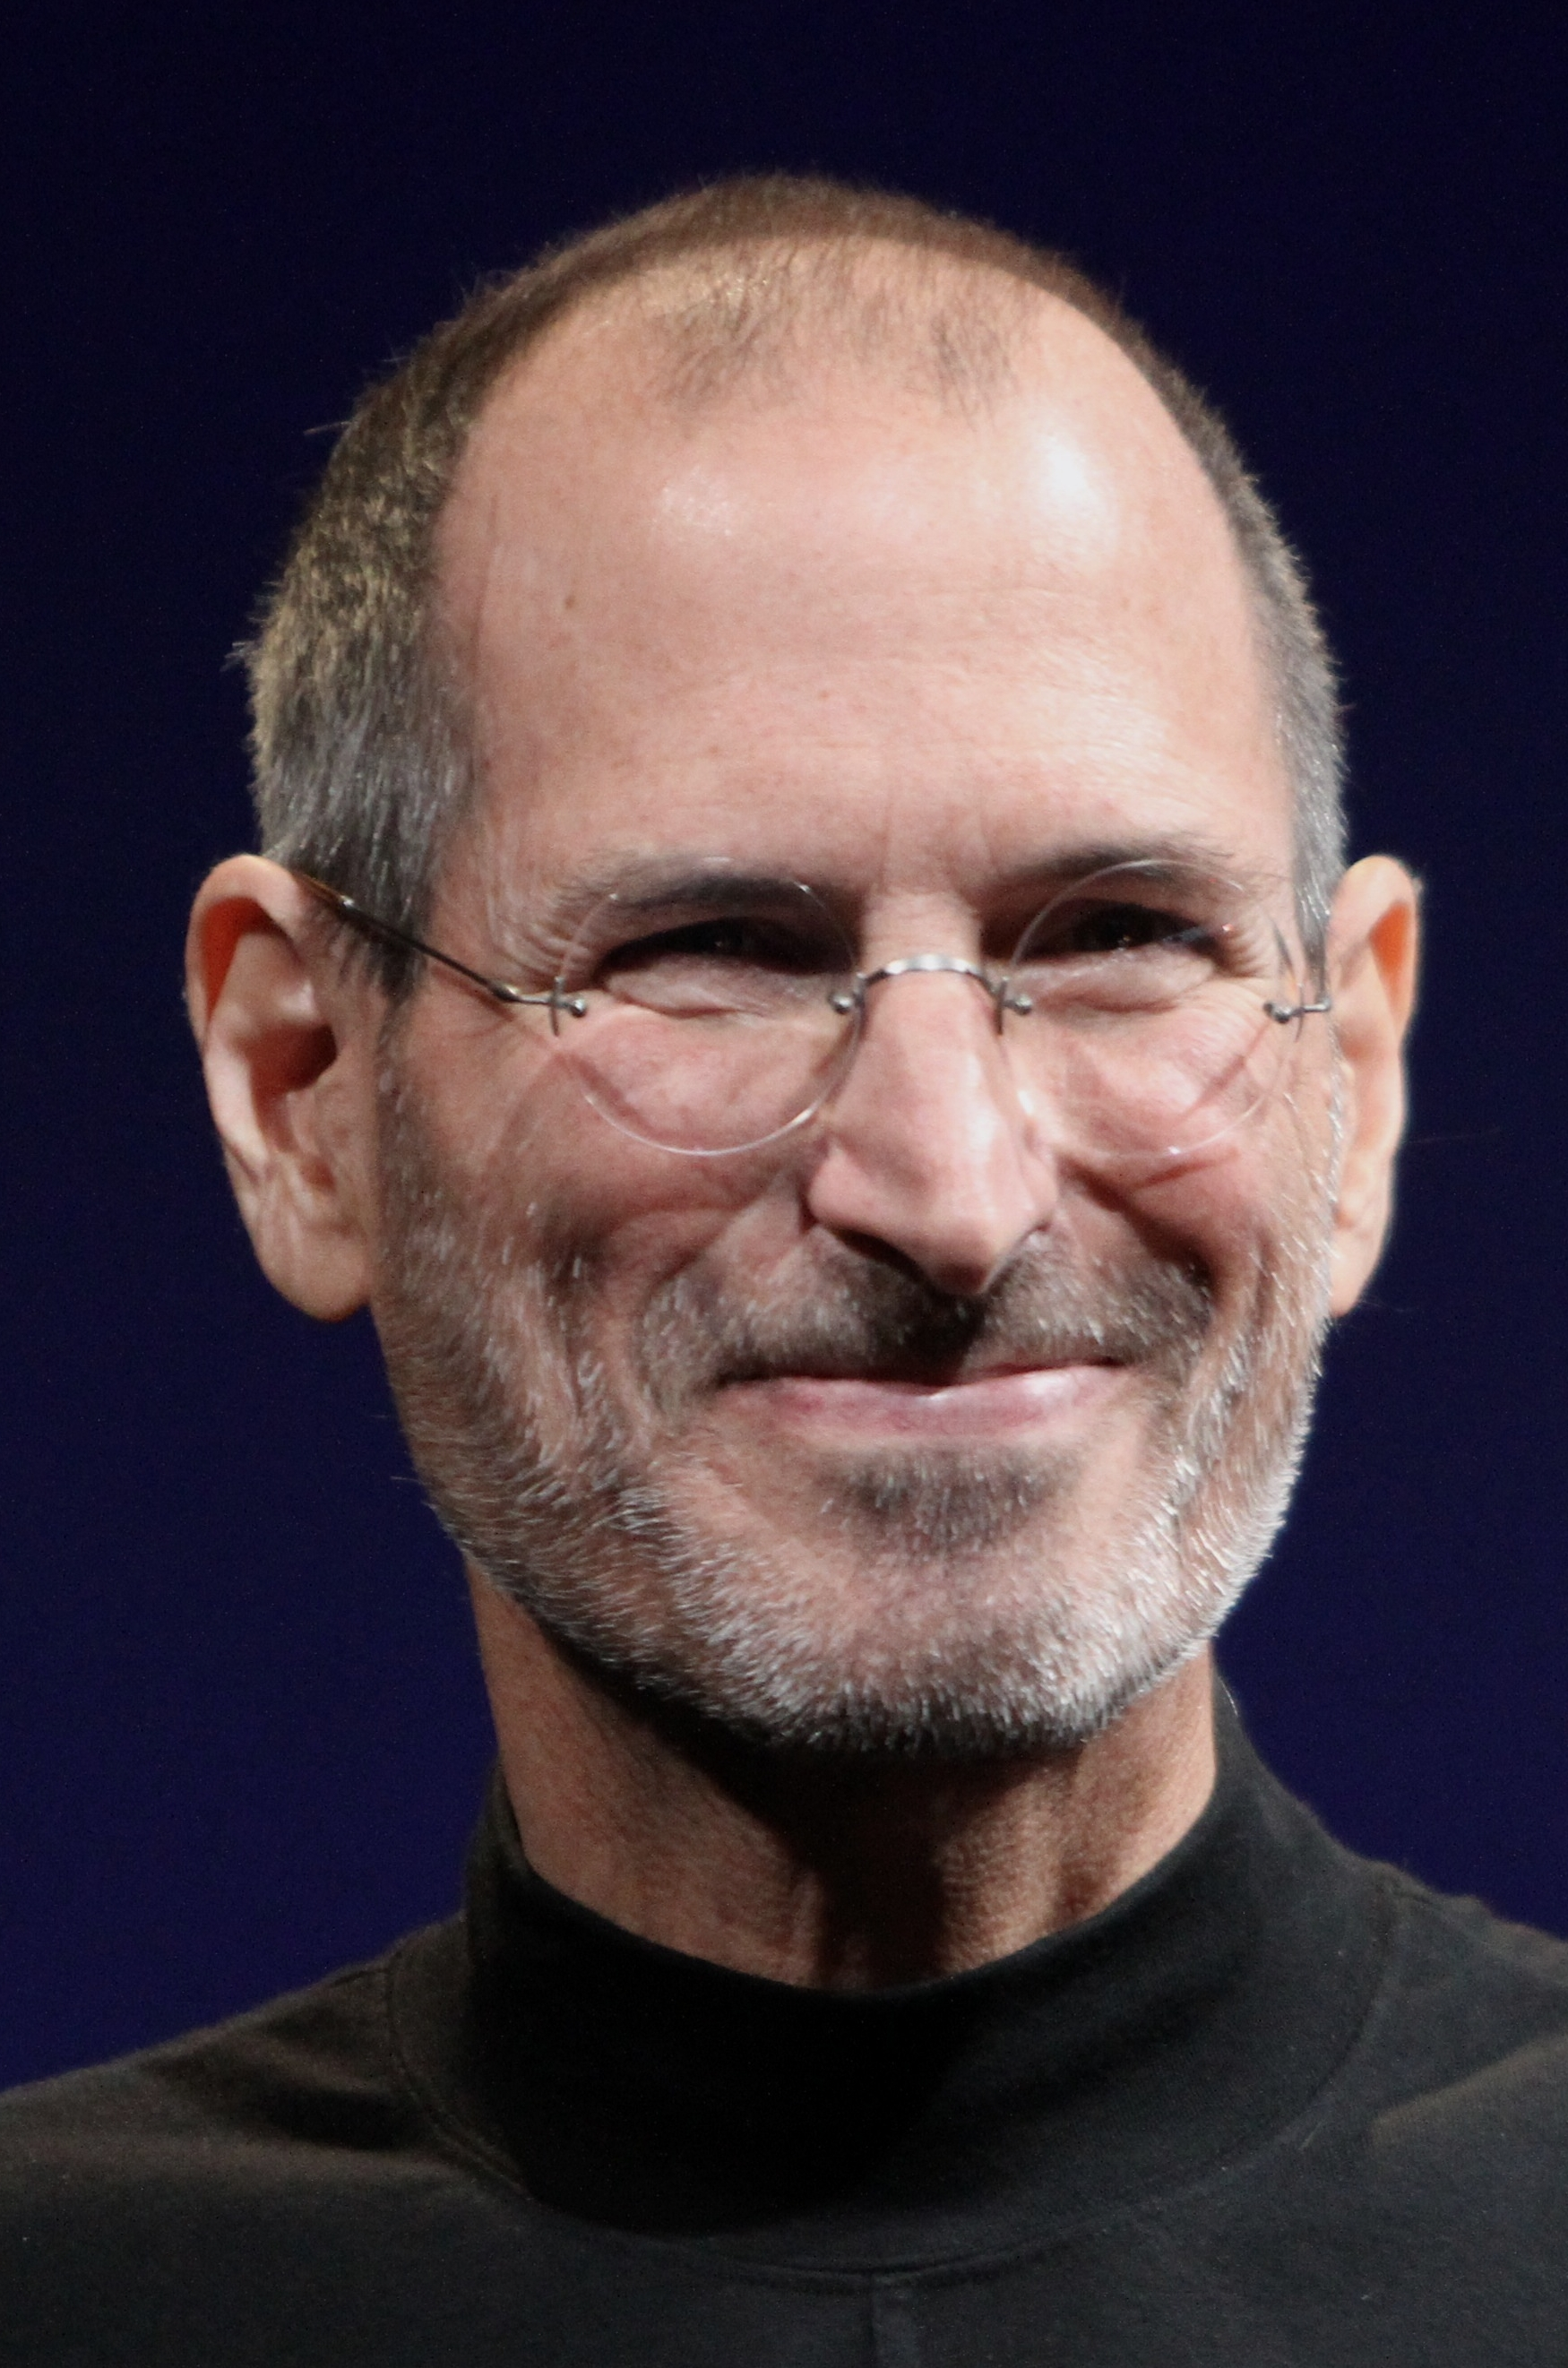 <b>Steve Jobs</b>, Mitgründer des Hard- und Softwareherstellers Apple Inc., <b>...</b> - Steve_Jobs_Headshot